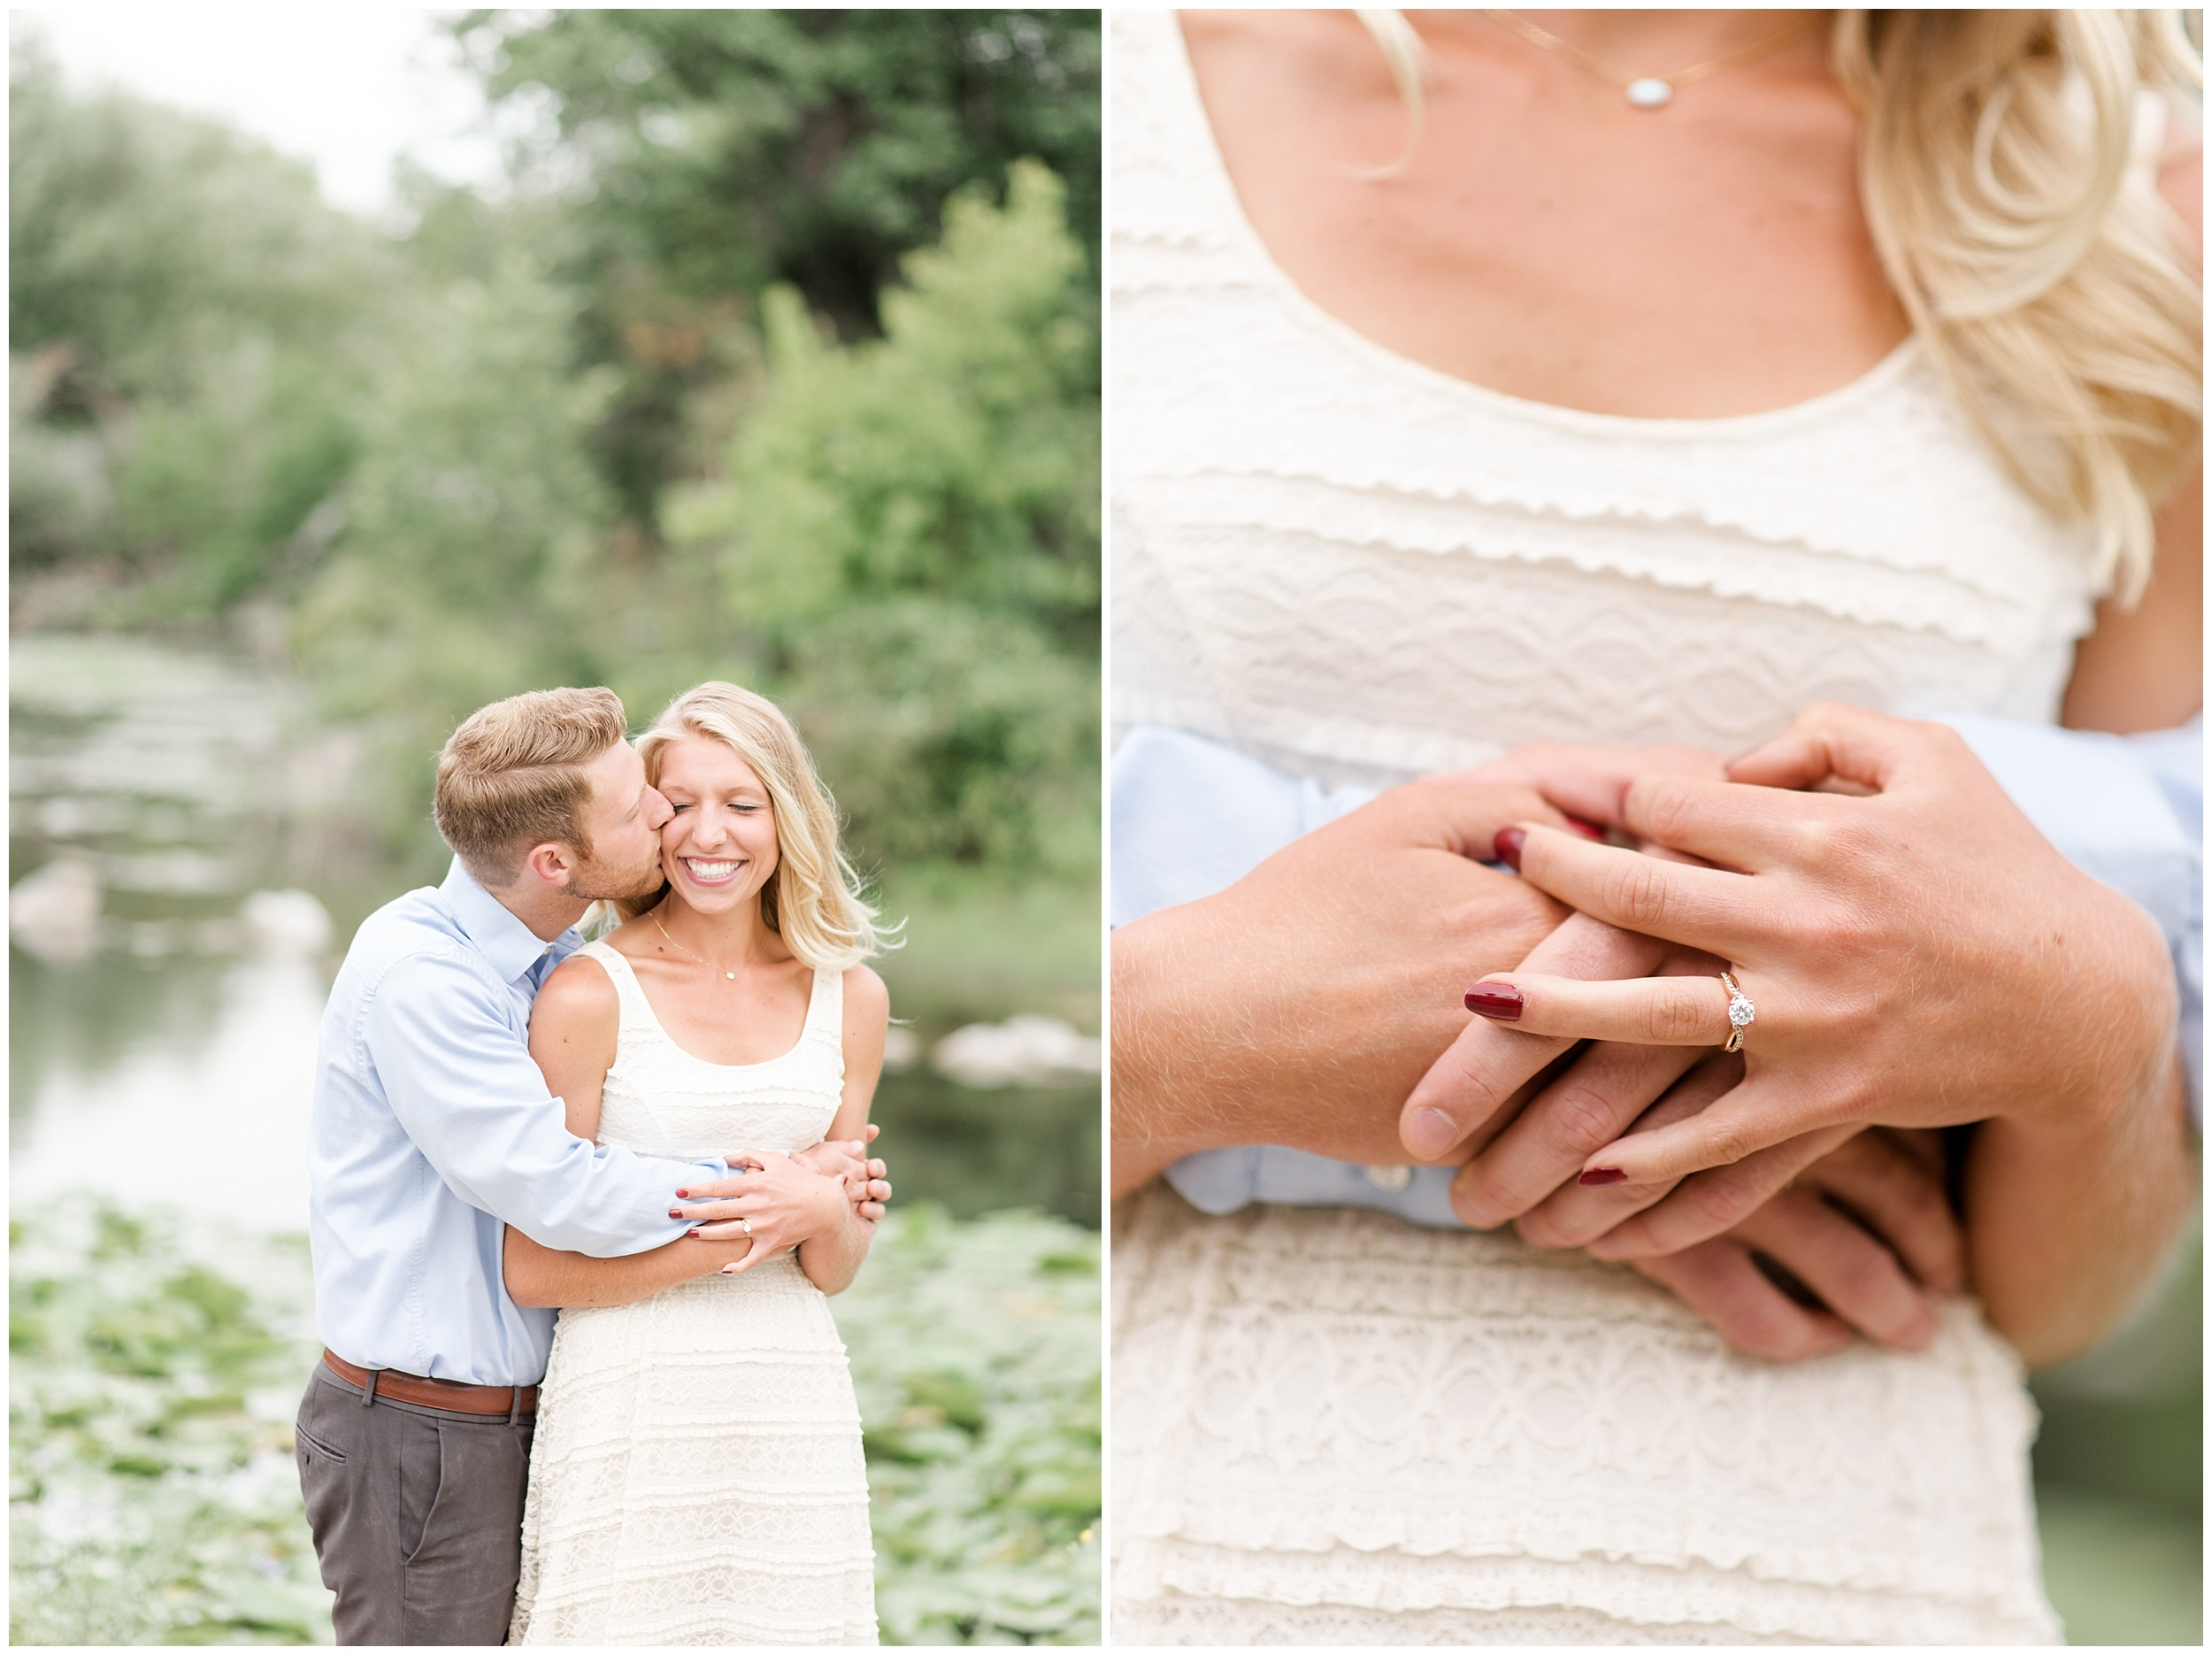 tenney-park-engagement-session-madison-wisconsin-bright-light-airy-wedding-photographer_0007.jpg